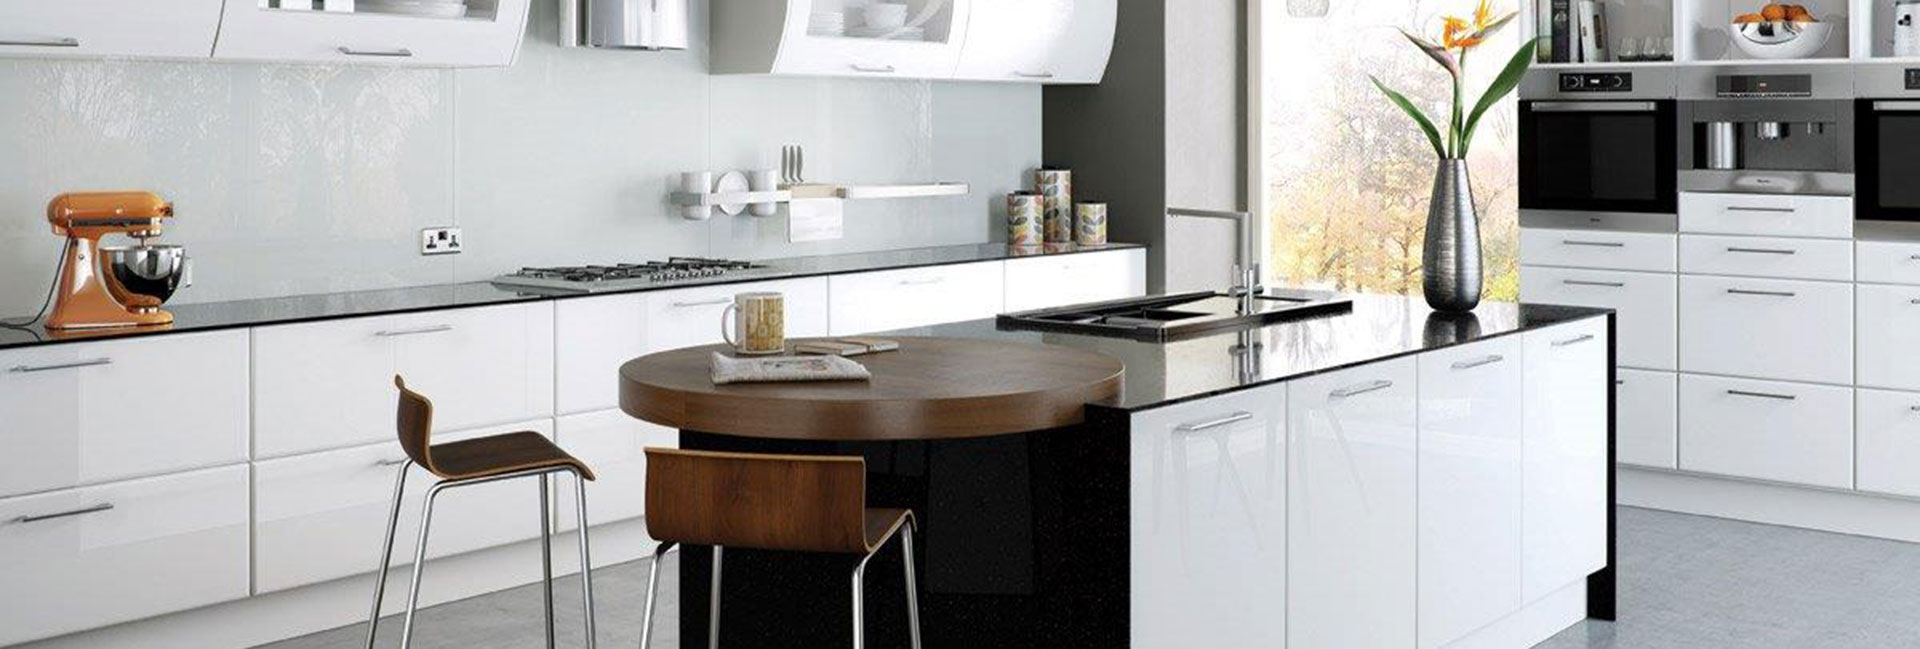 worktop-warehouse-kitchen-2